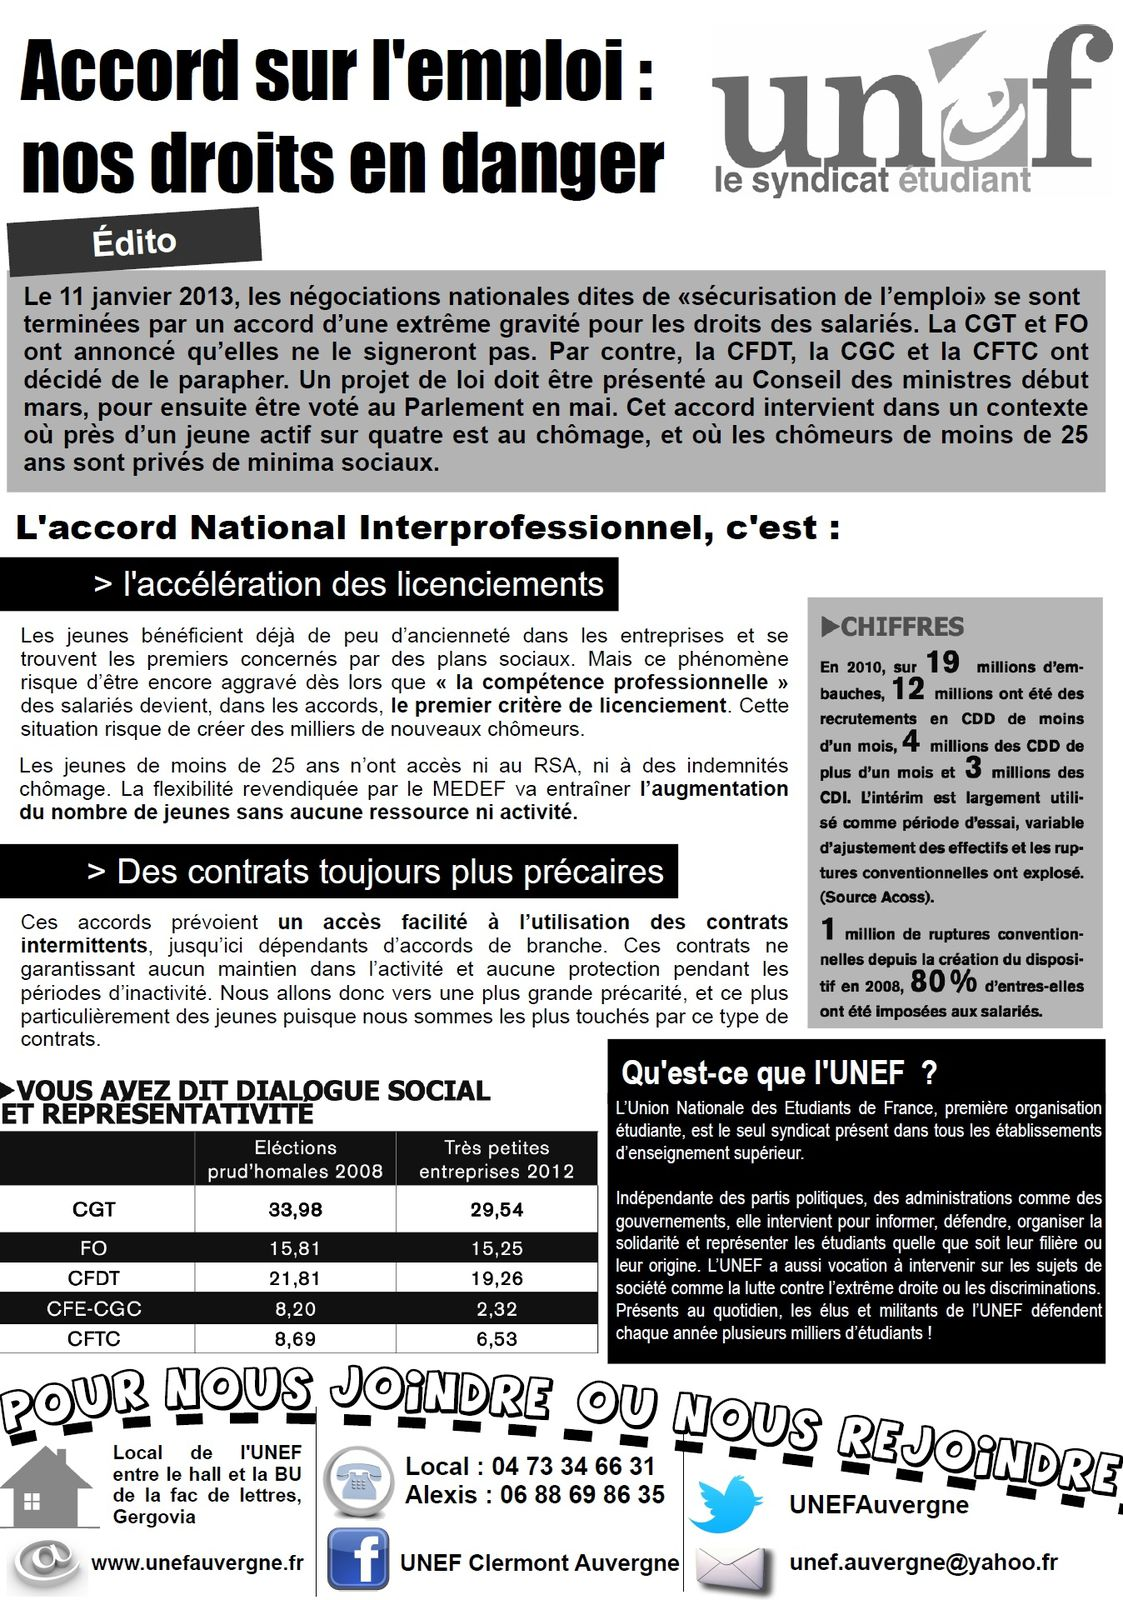 tract-Wagram-image-pour-blog.jpg